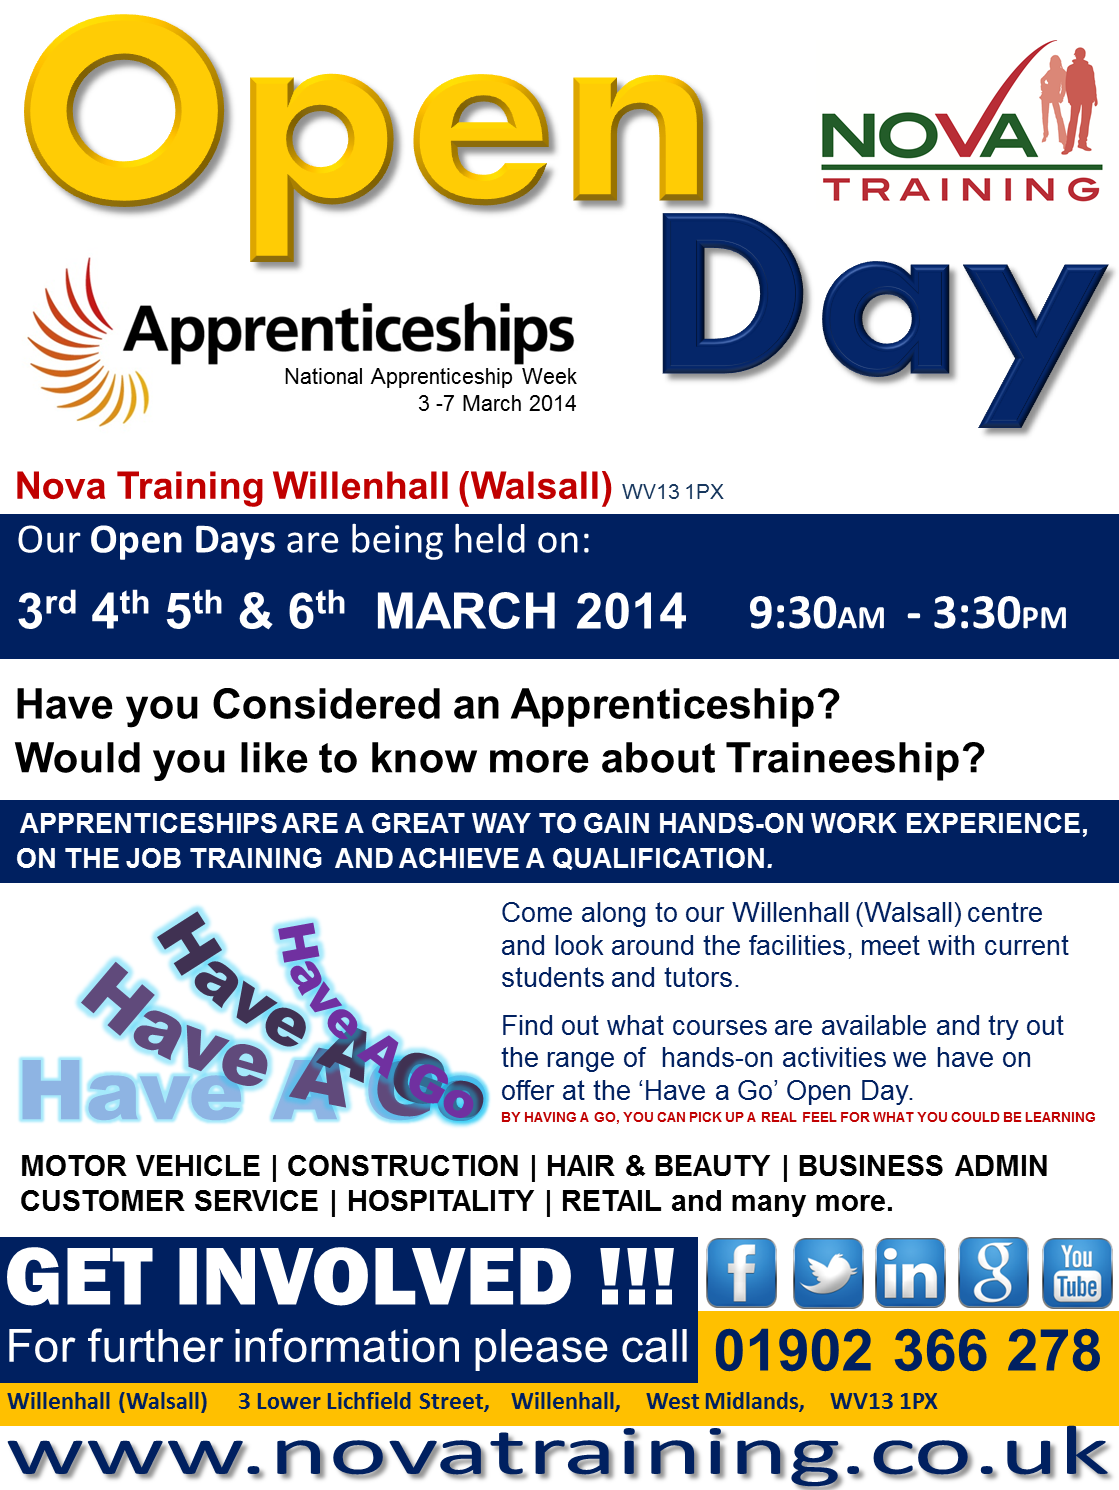 WILLENHALL (WALSALL) APPRENTICESHIP WEEK 2014